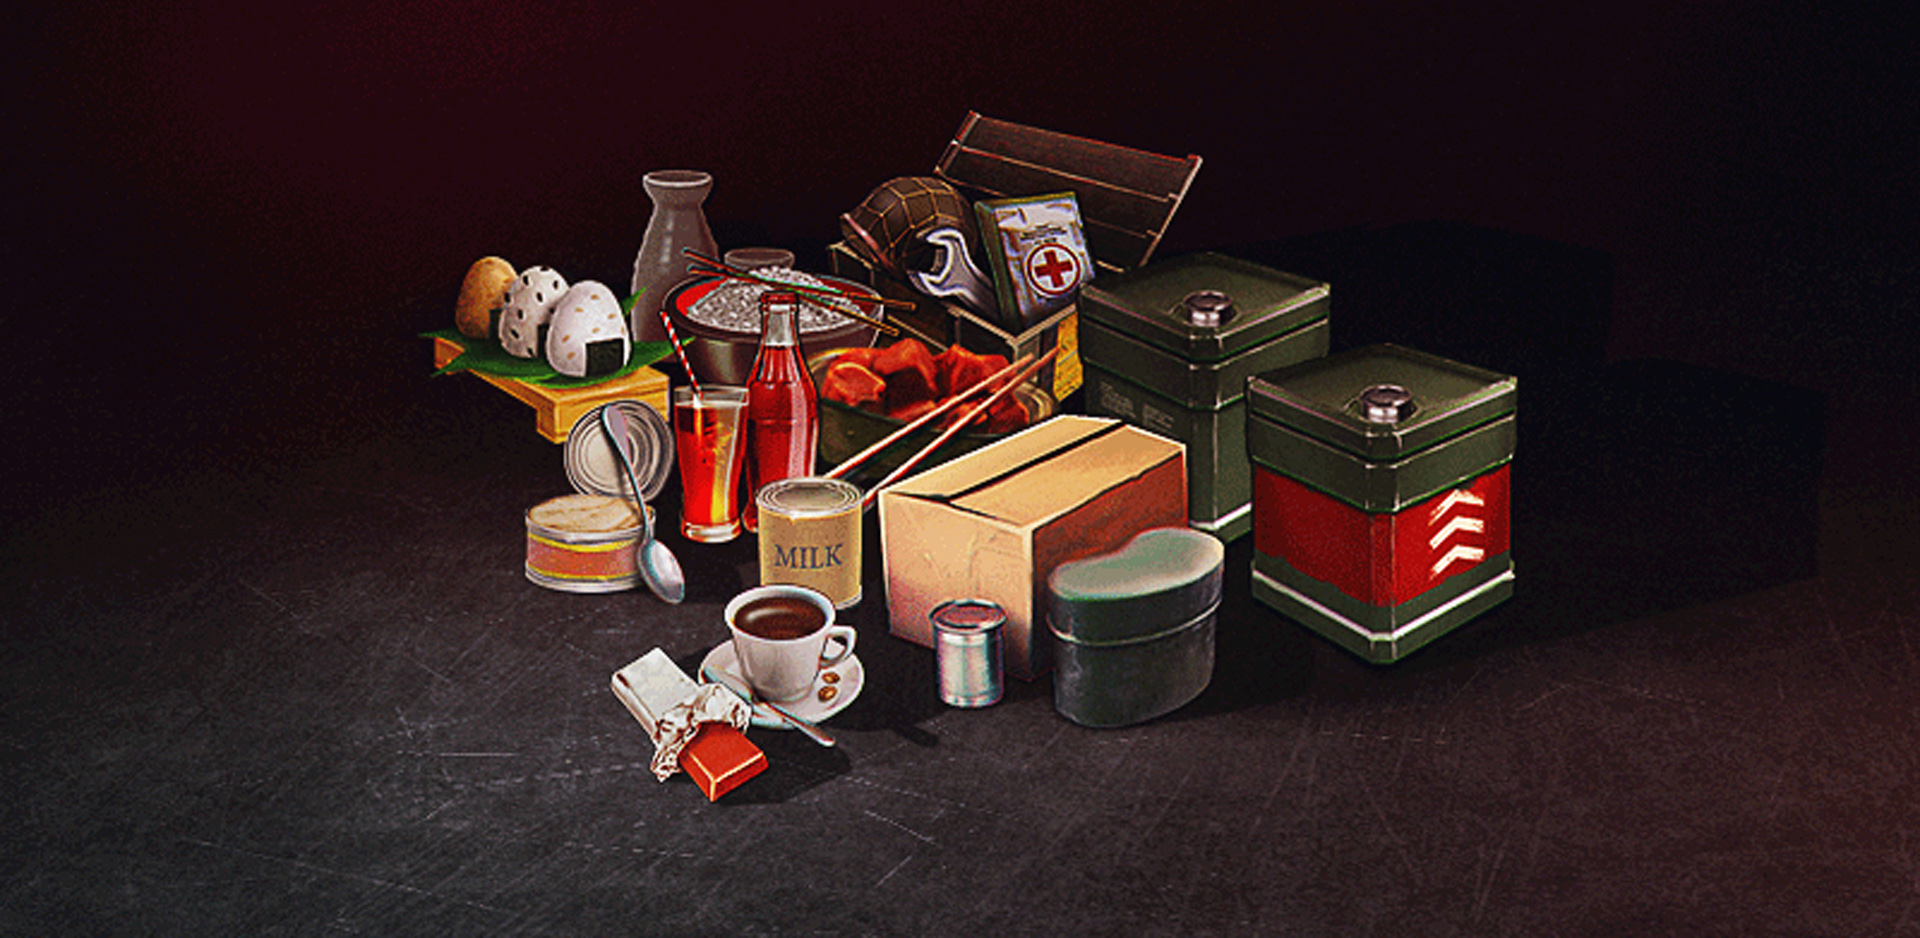 World of Tanks  Complete Consumables Guide  Tank War Room  World of Tanks News Guides Video